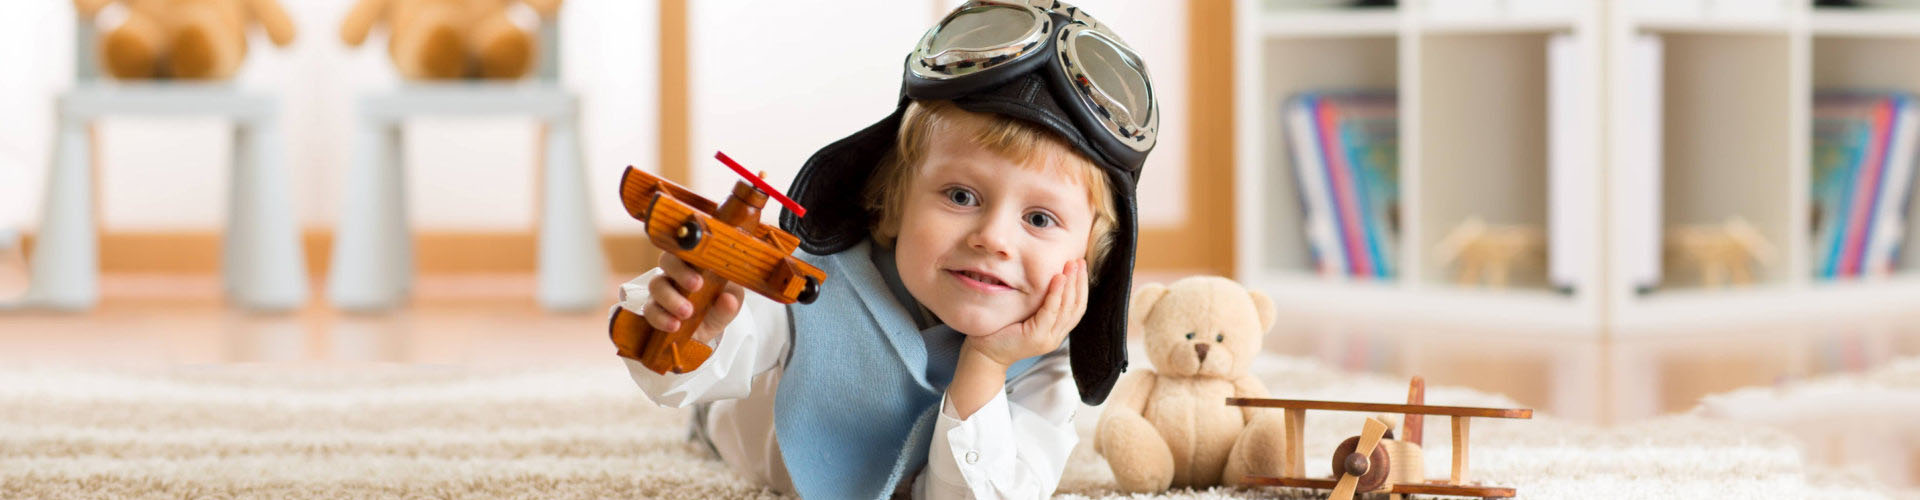 young boy playing with an airplane while wearing a pilot's cap